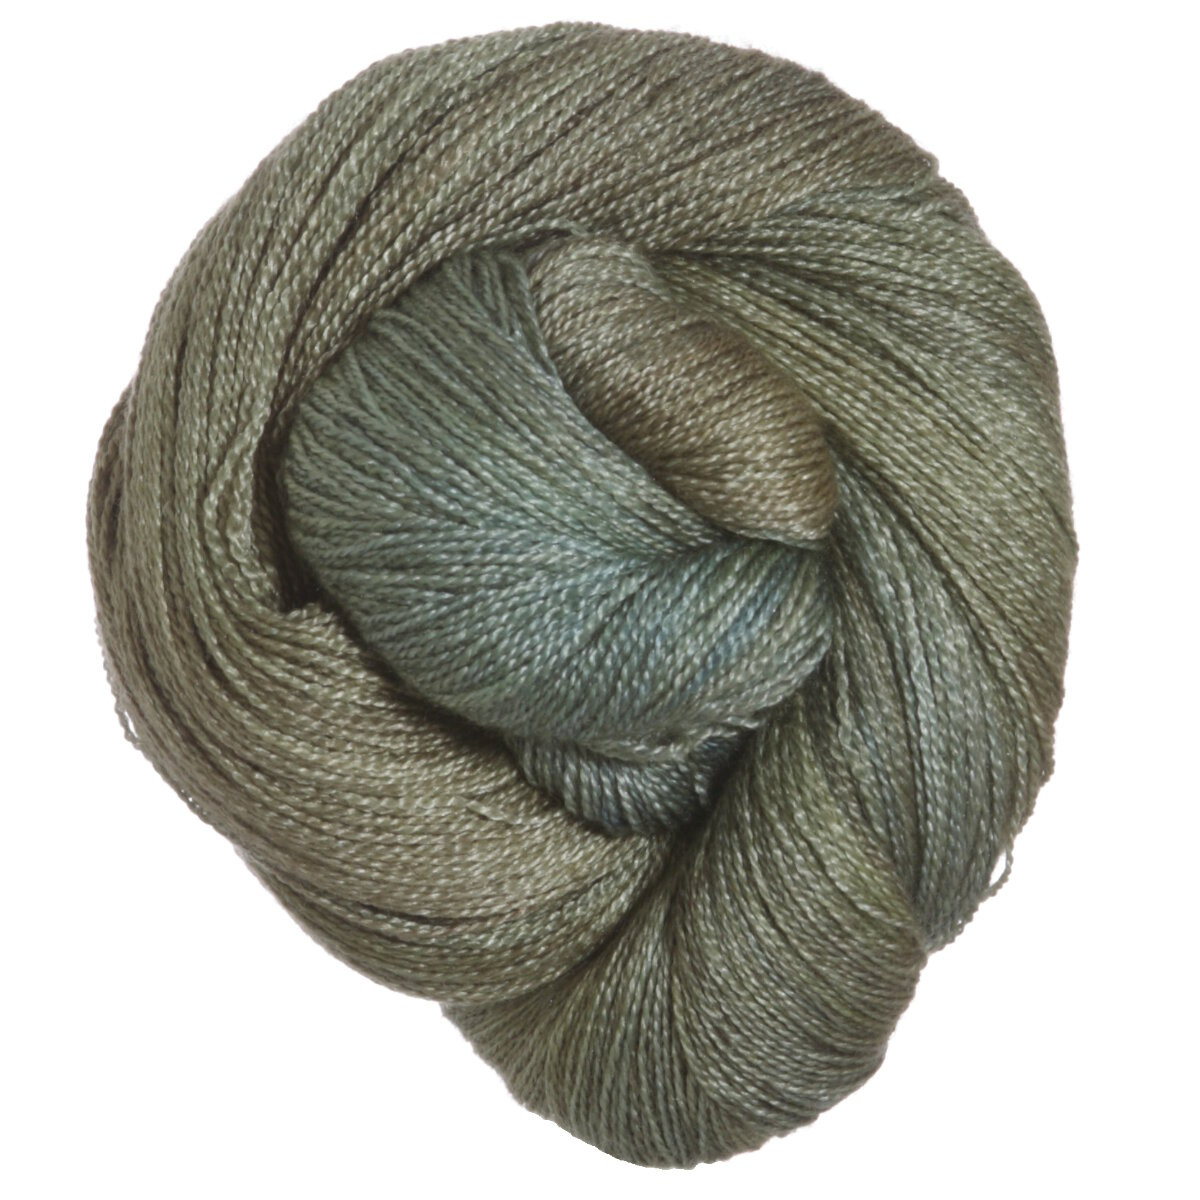 Fyberspates Gleem Lace Yarn 715 Lundy Island at Jimmy